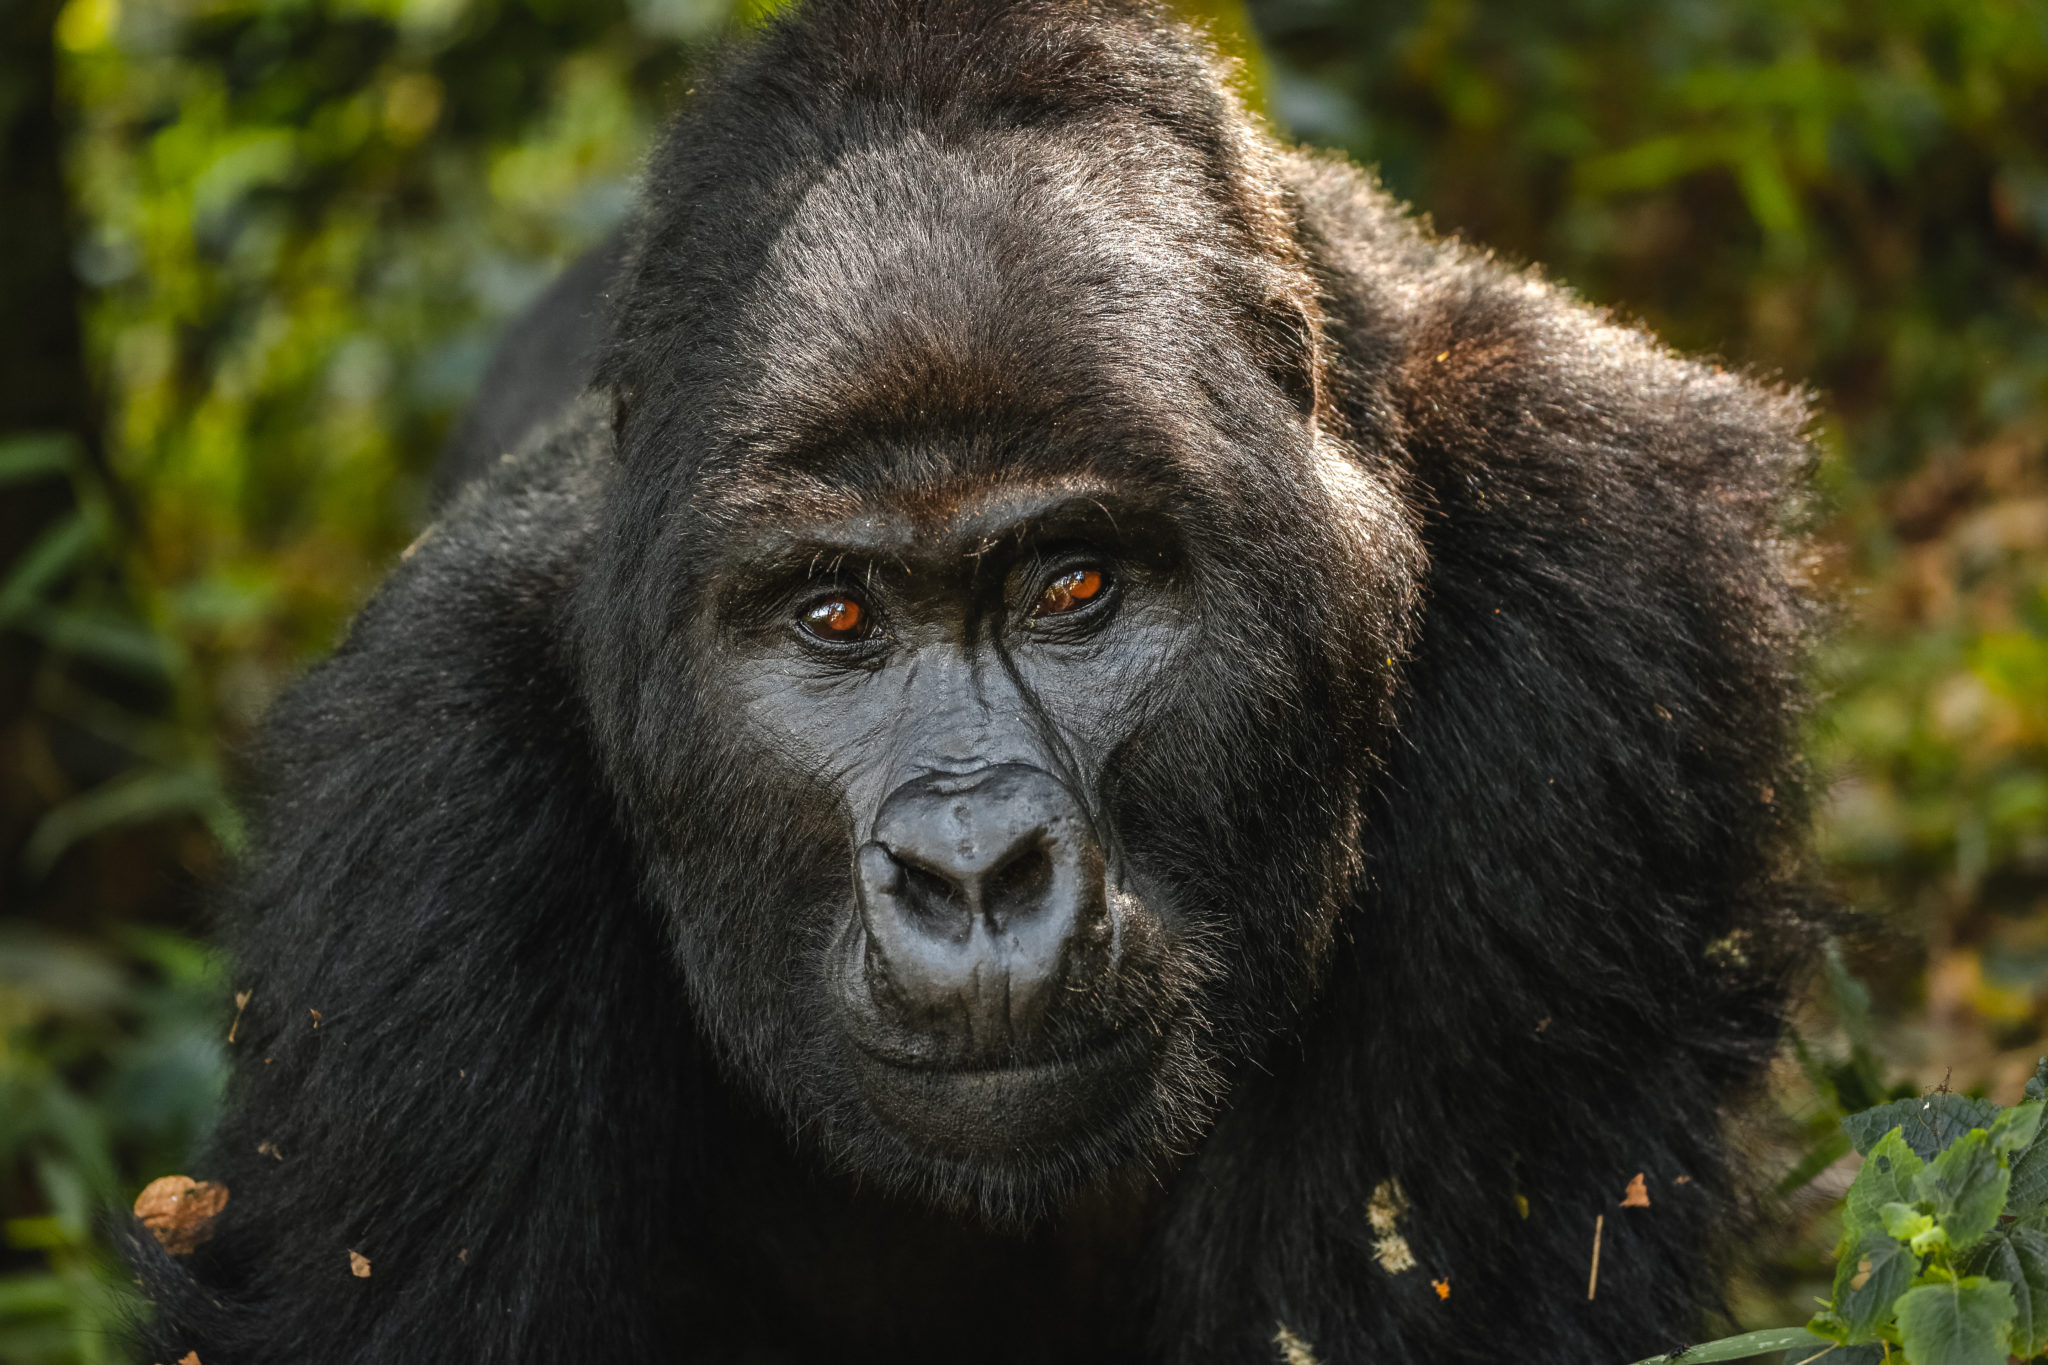 Top Things To Do In Uganda - GORILLA TREKKING IN BWINDI IMPENETRABLE FOREST